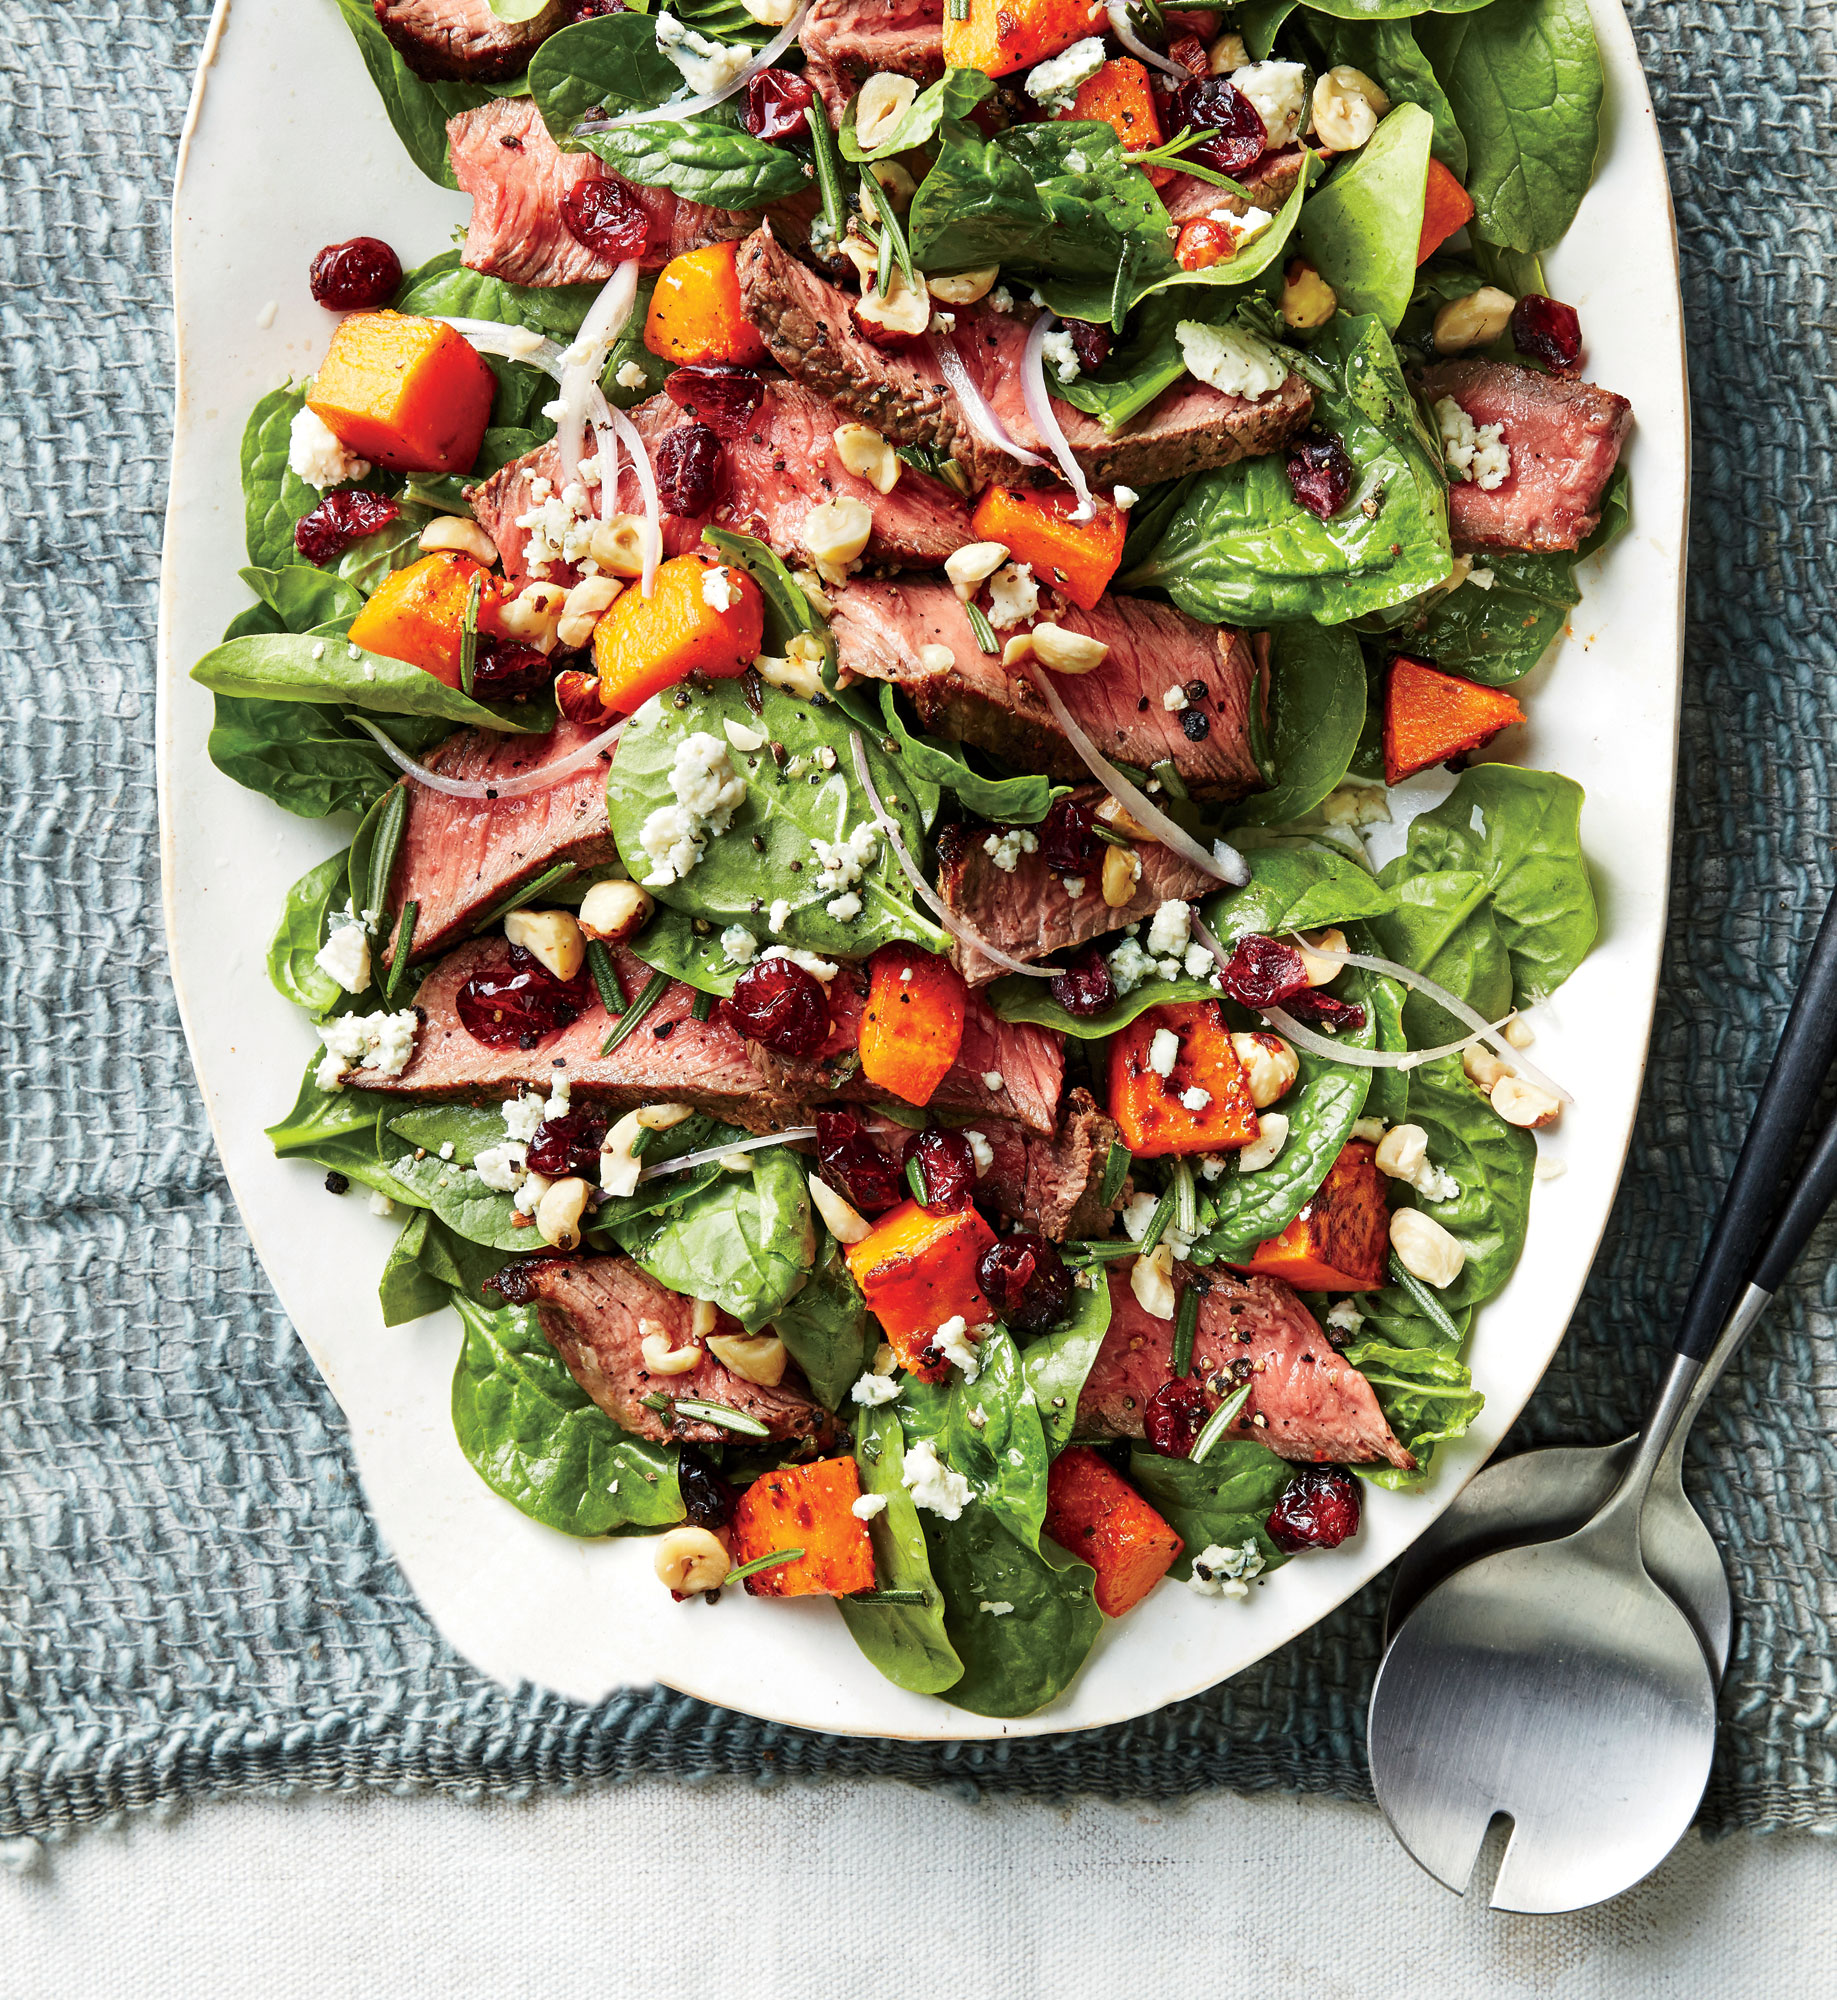 Steak Salad with Butternut Squash and Cranberries